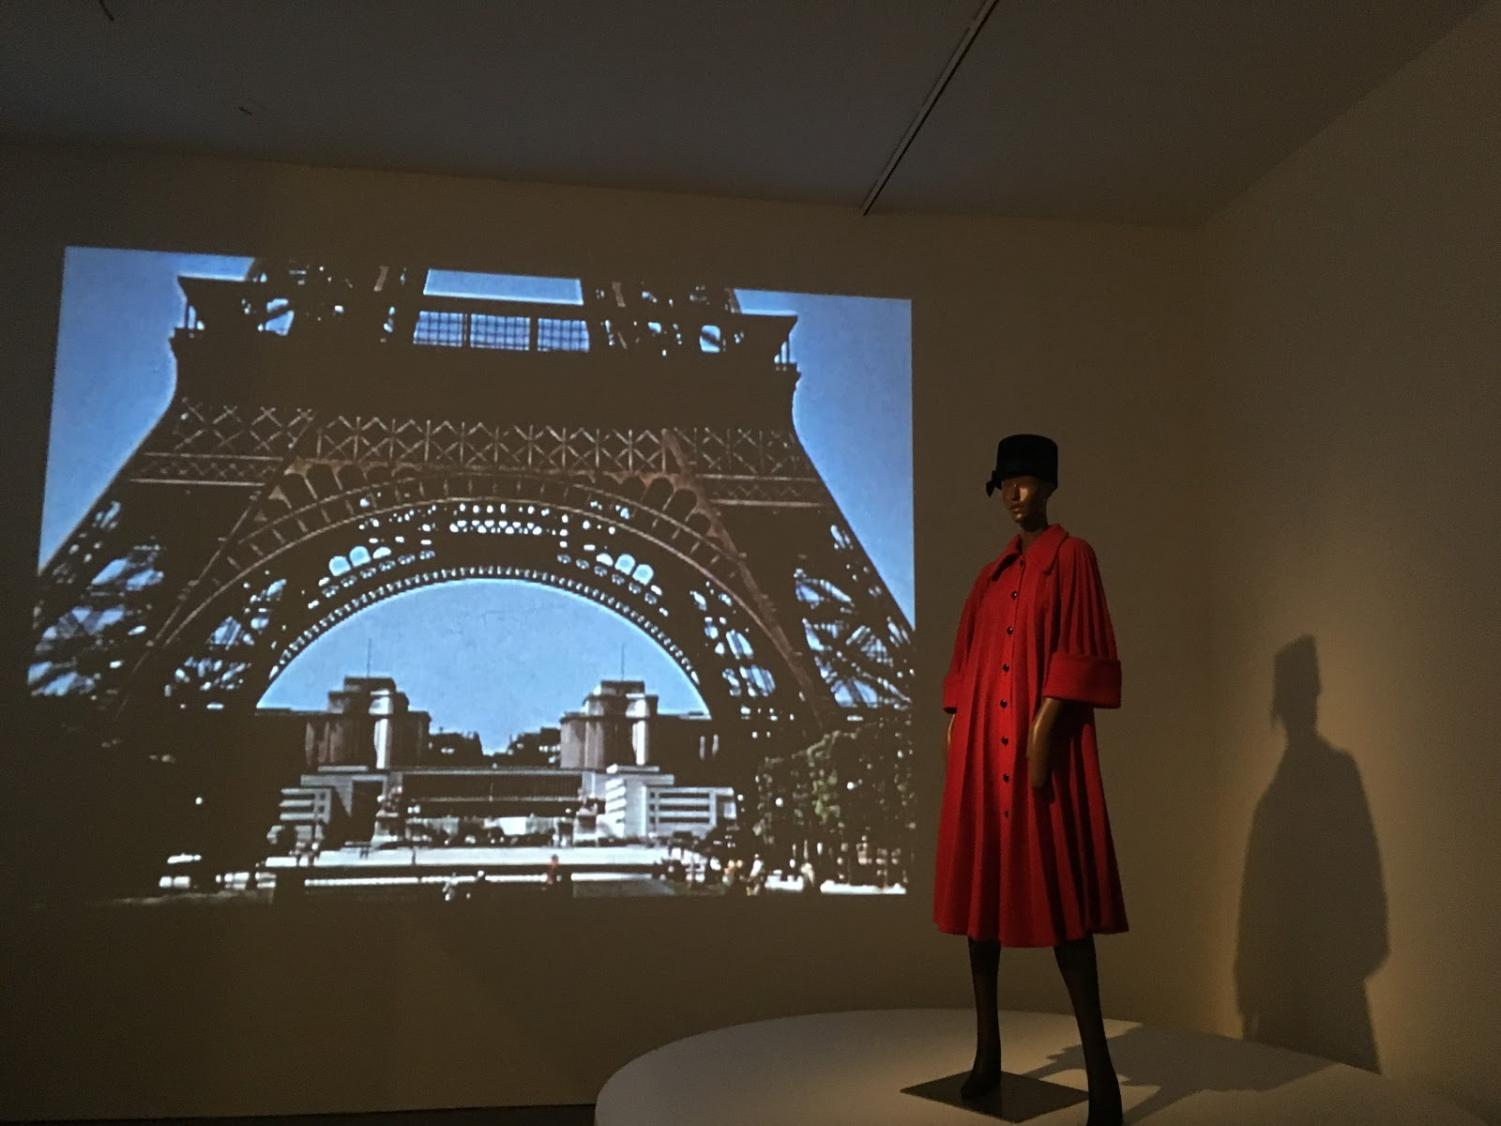 The Past's Future Fashion: A Review of 'Pierre Cardin' at the Brooklyn Museum